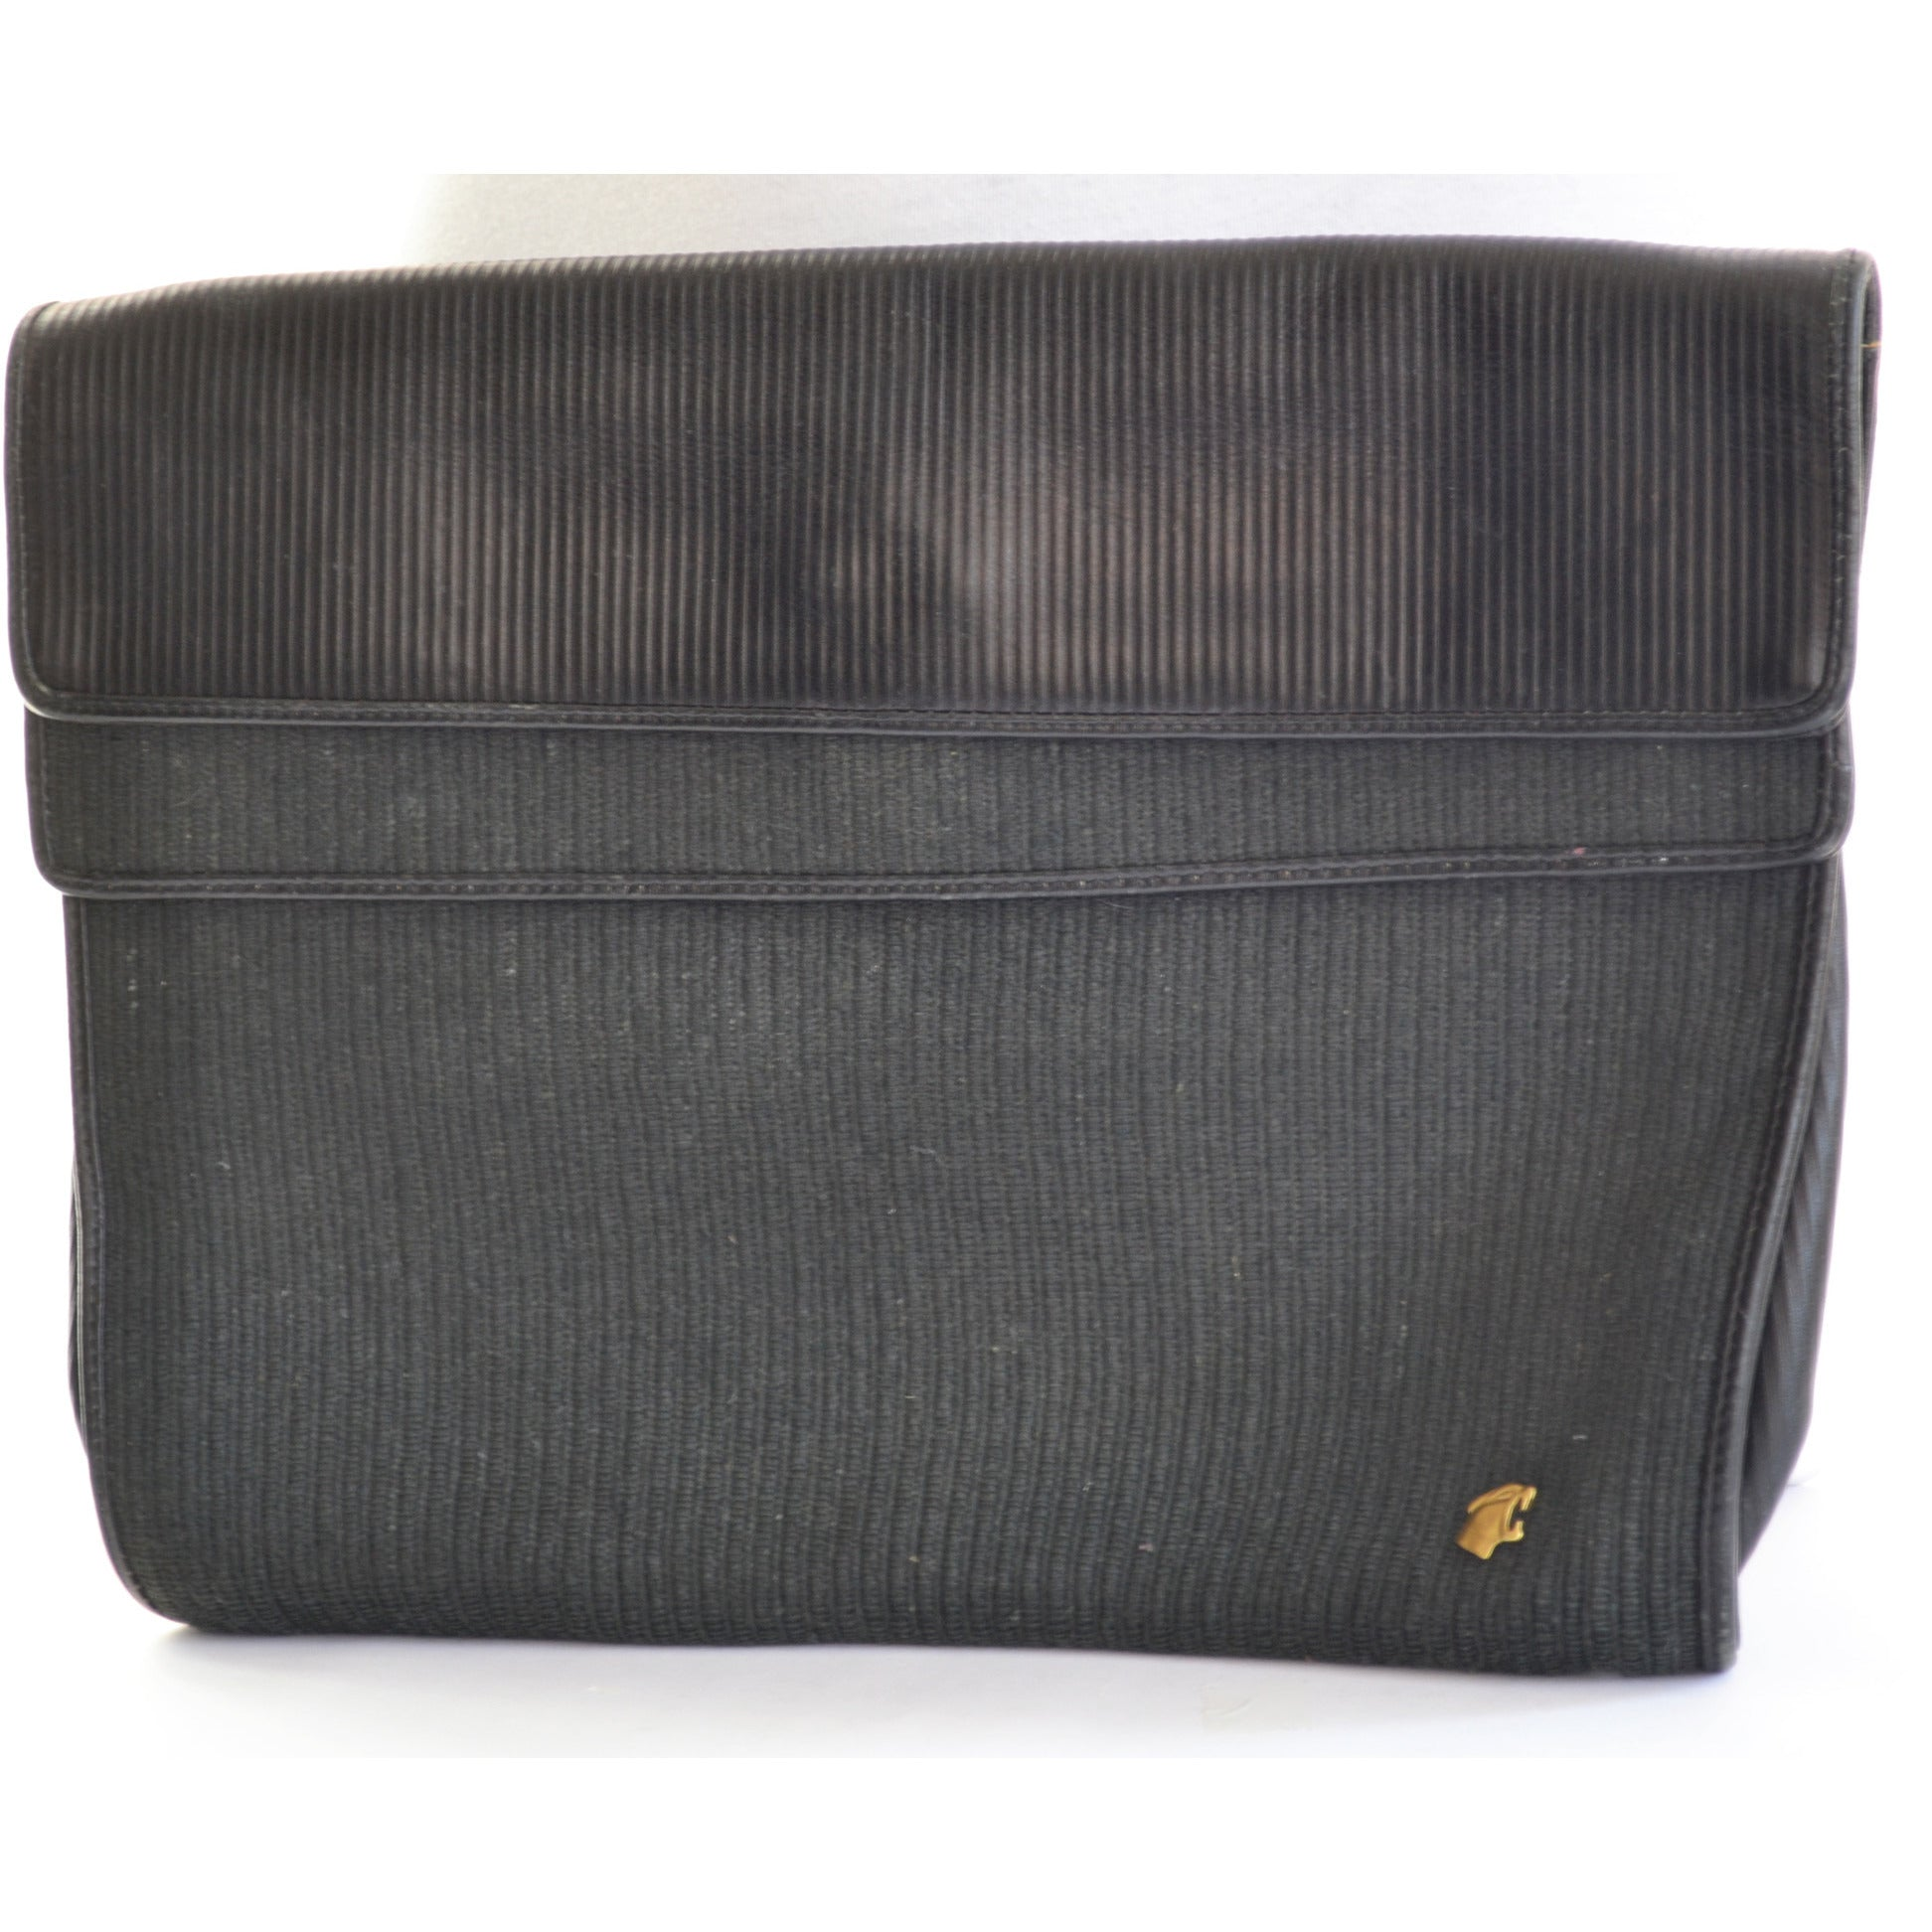 Vintage Ribbed Black Leather Clutch Purse By Bagheera